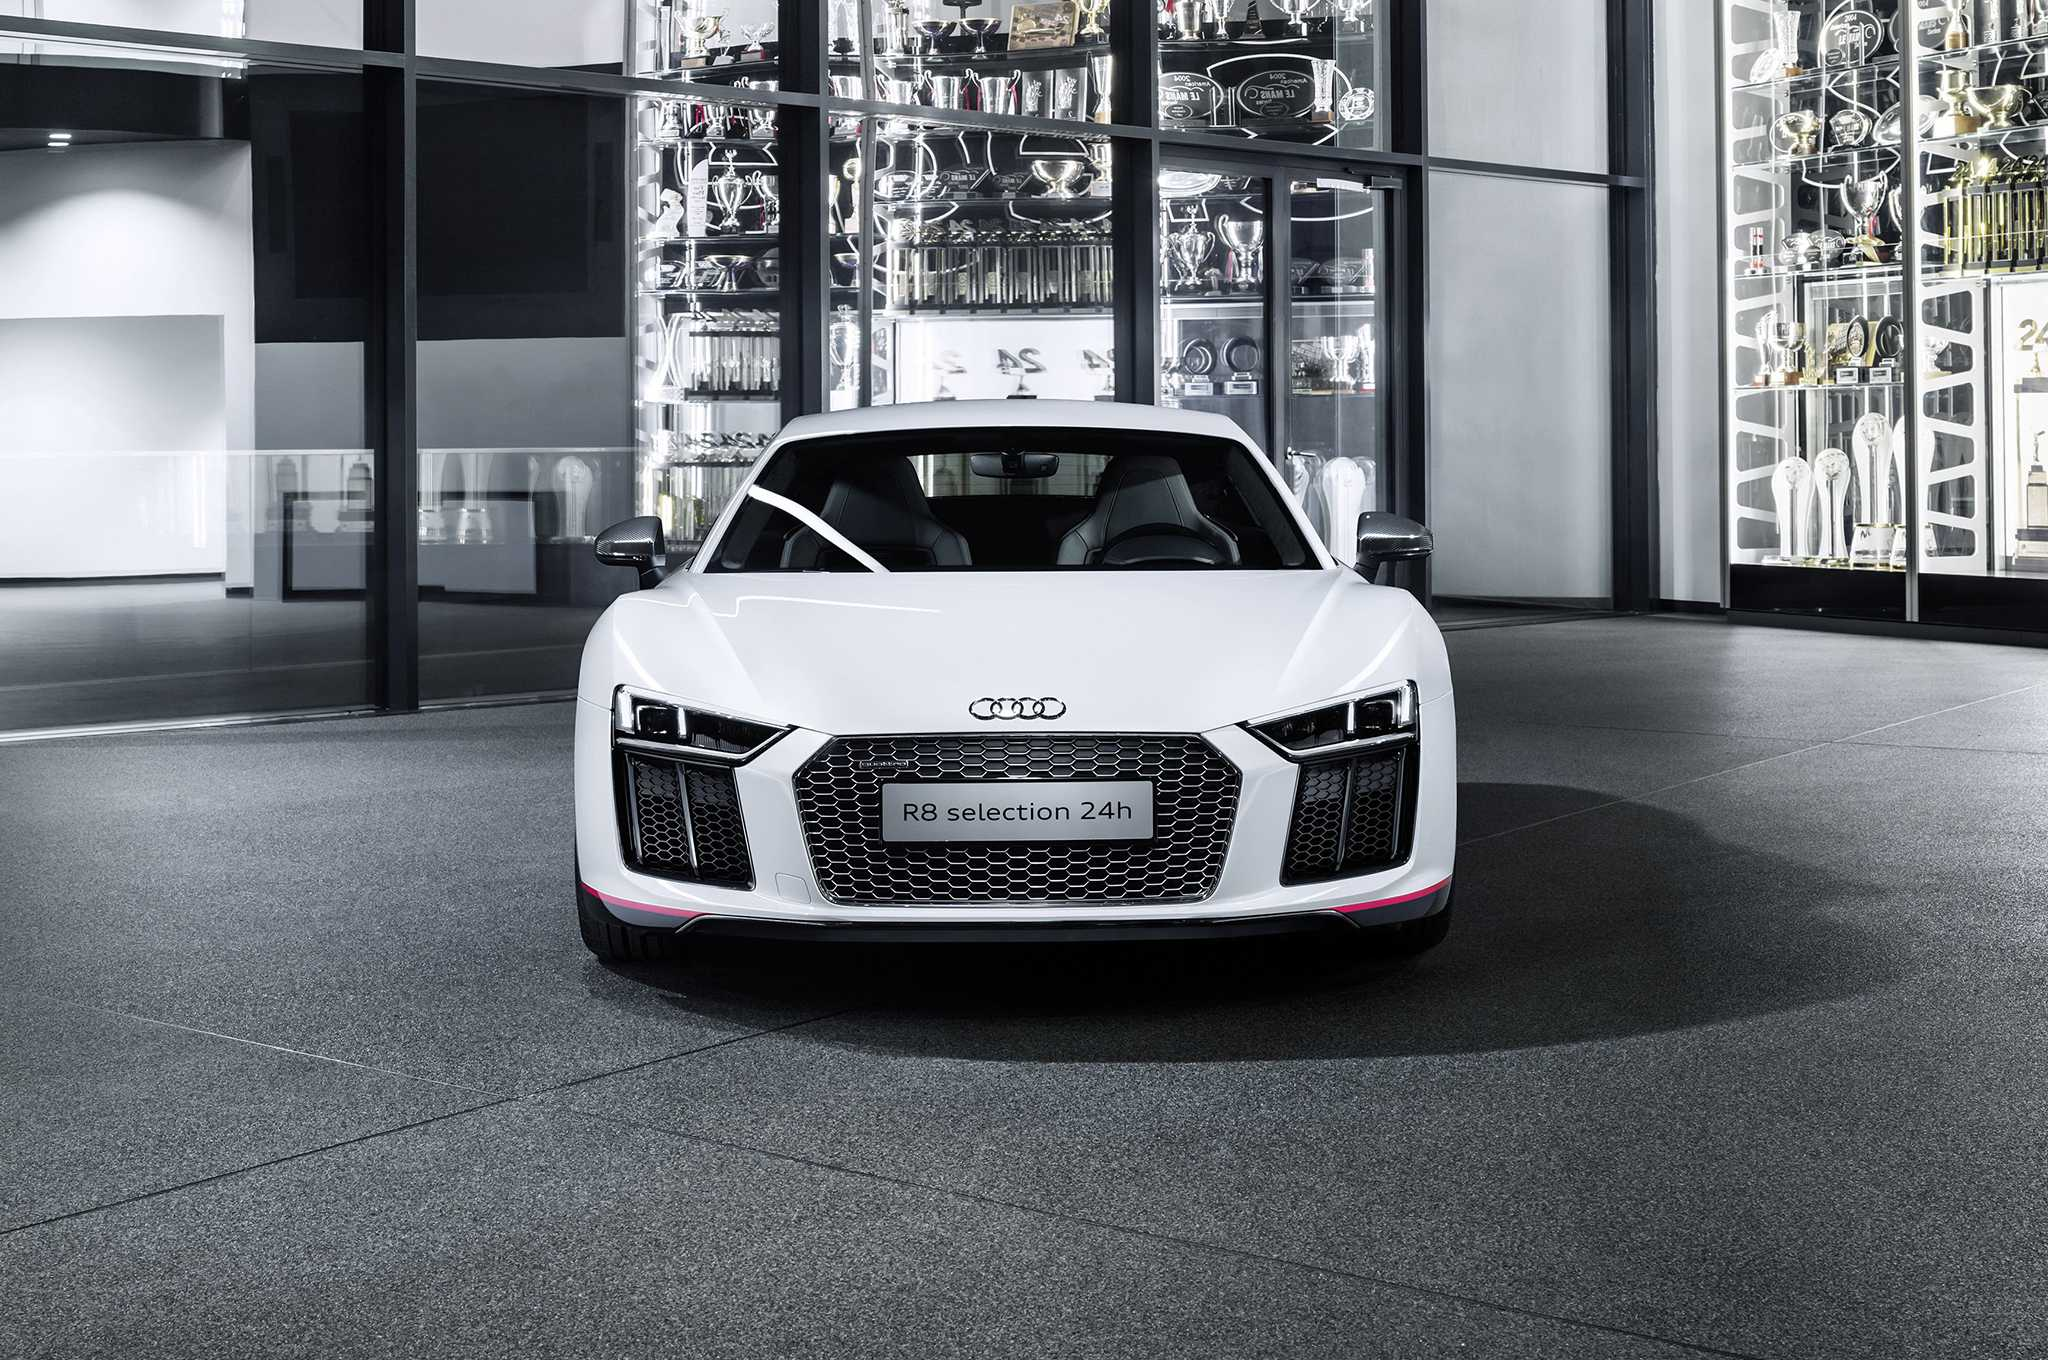 Audi R8 V10 Plus Selection 24H Launched, Official Pictures Released